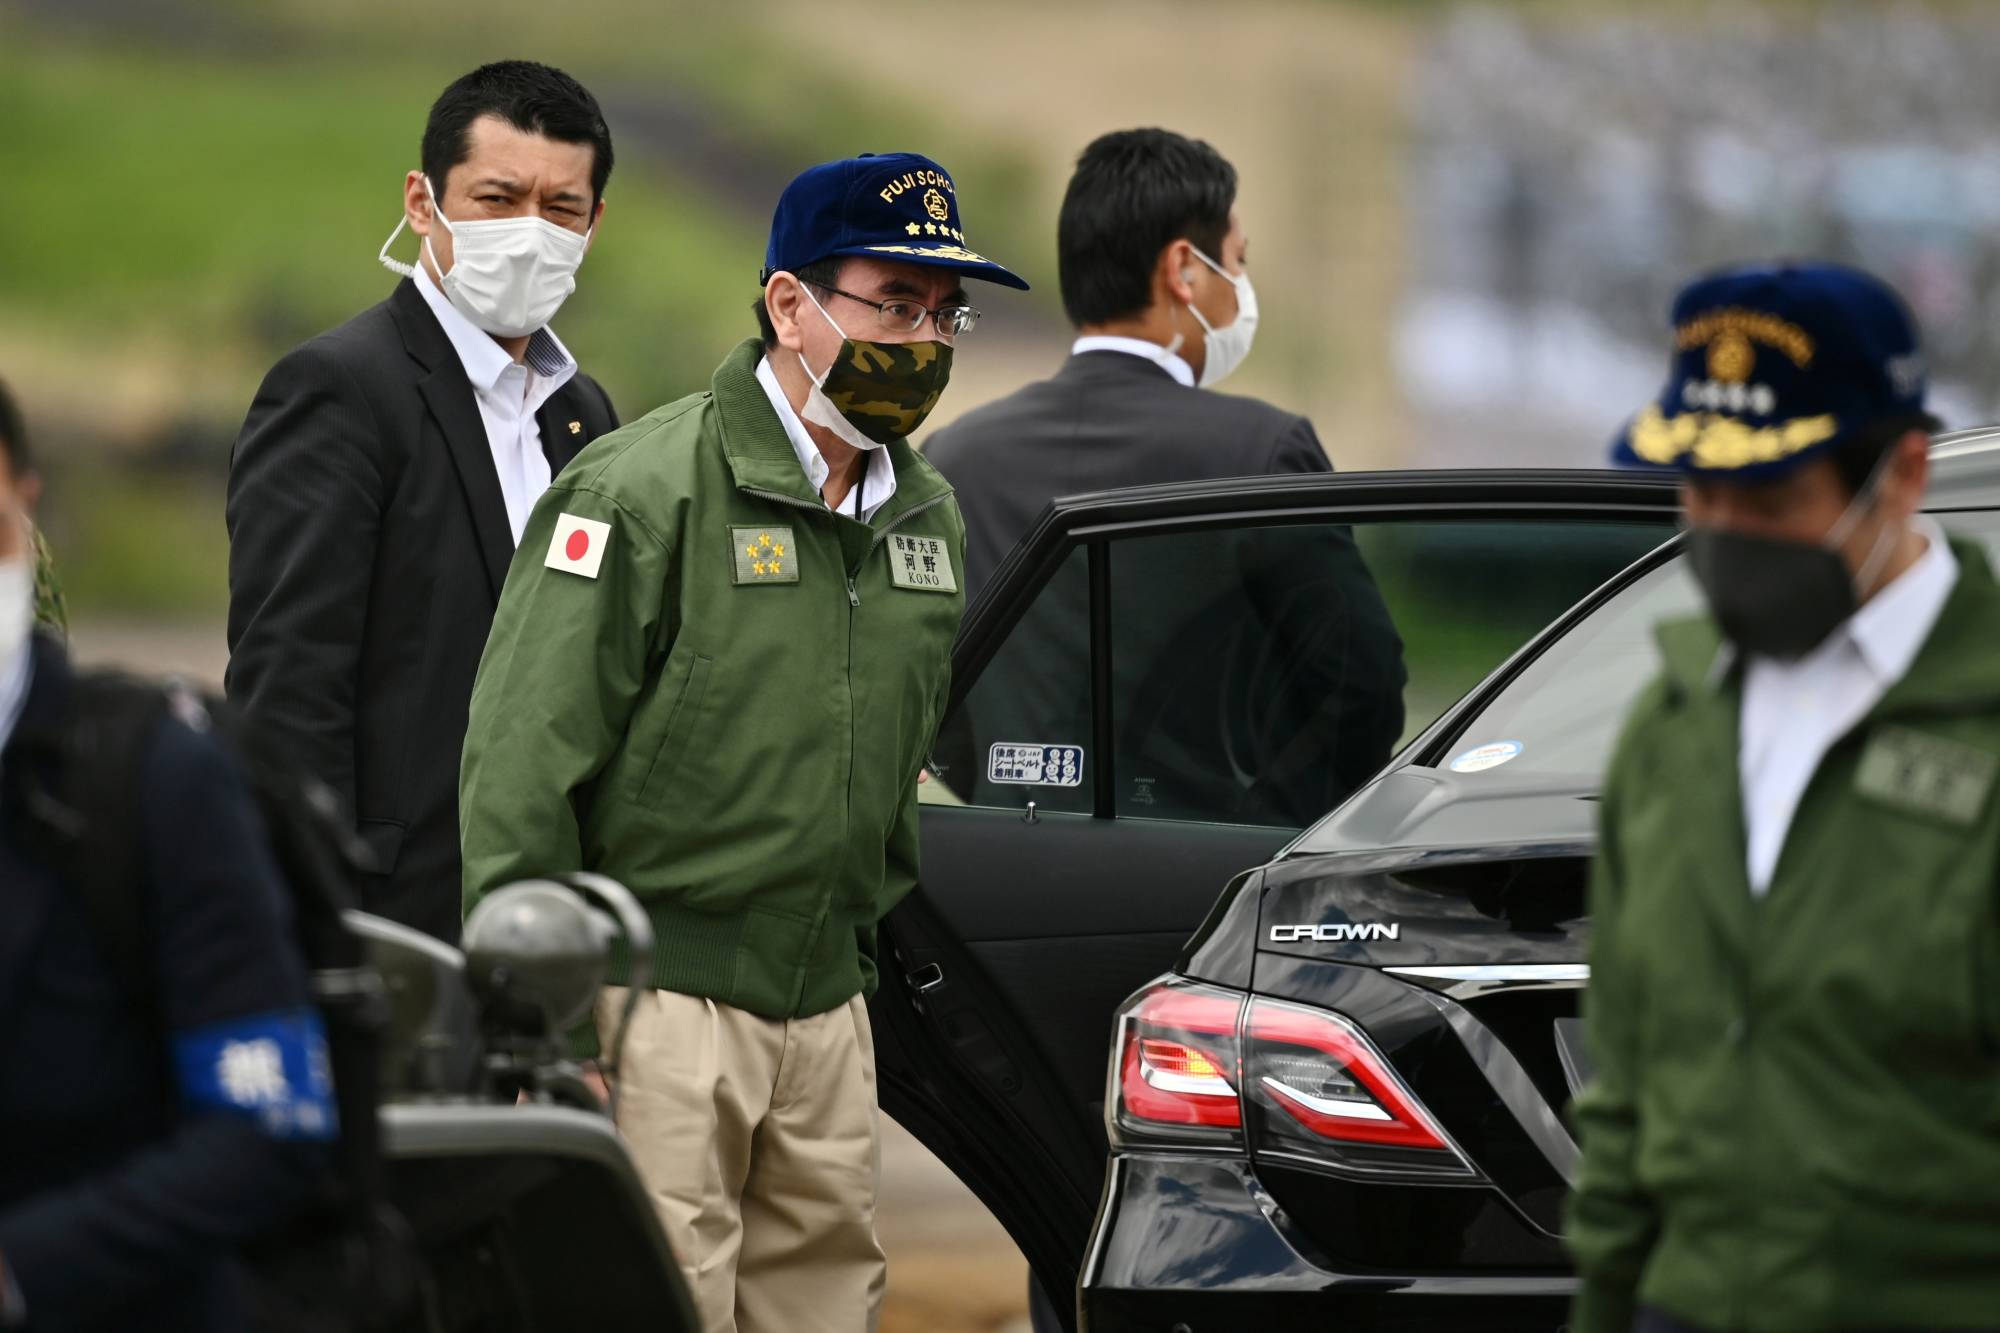 Defense Minister Taro Kono attends the Japan Ground Self-Defense Forces' annual live fire exercise at the Higashi-Fuji firing range in Gotemba in Shizuoka Prefecture amid the spread of the coronavirus last week.  | POOL / VIA REUTERS